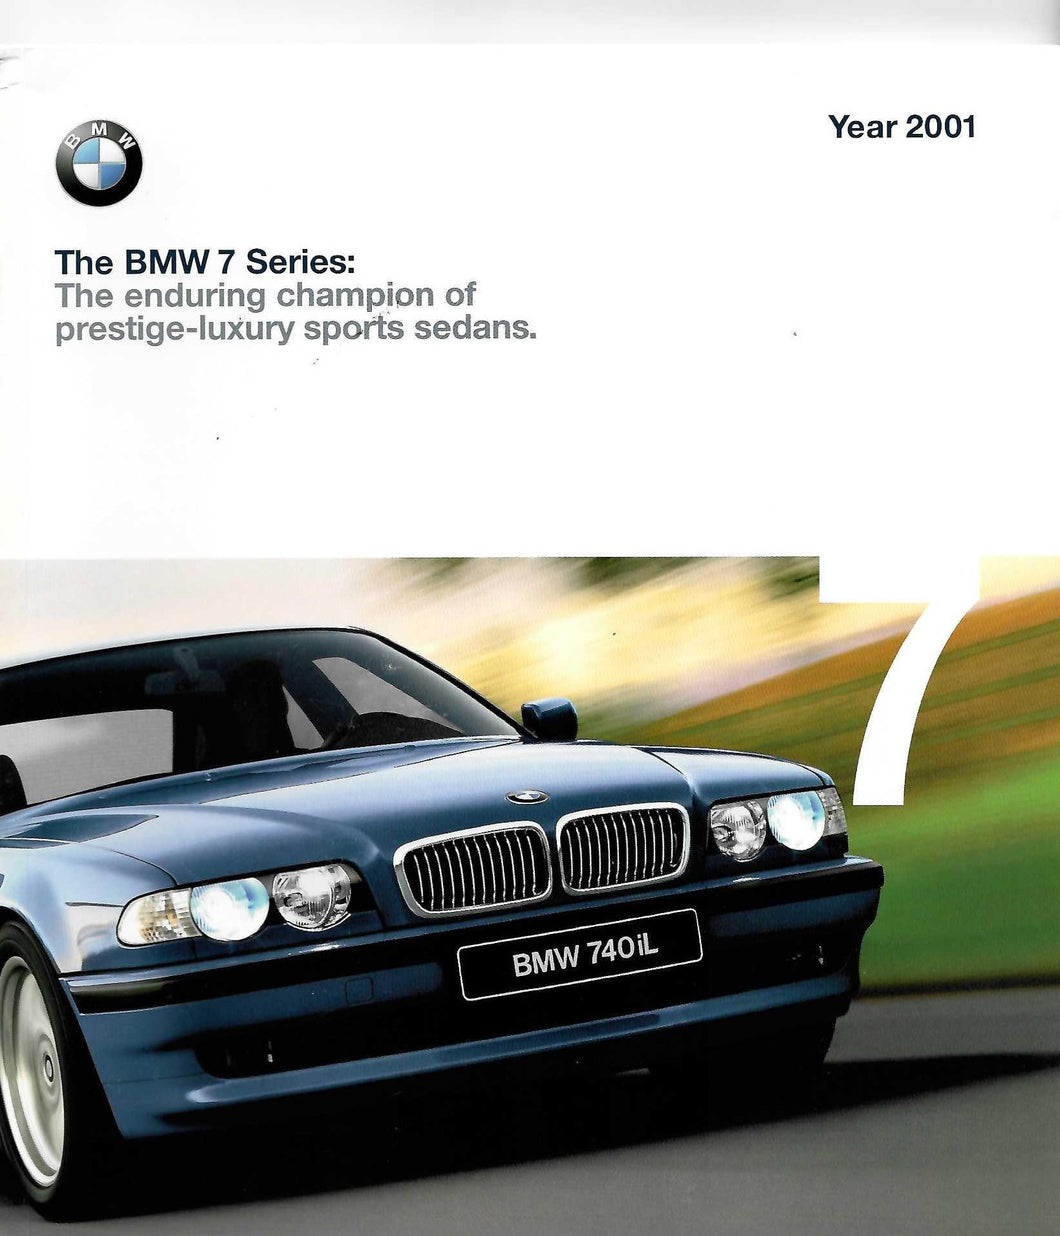 Brochure - BMW 7 Series: The enduring champion of prestige-luxury sports sedans. Year 2001